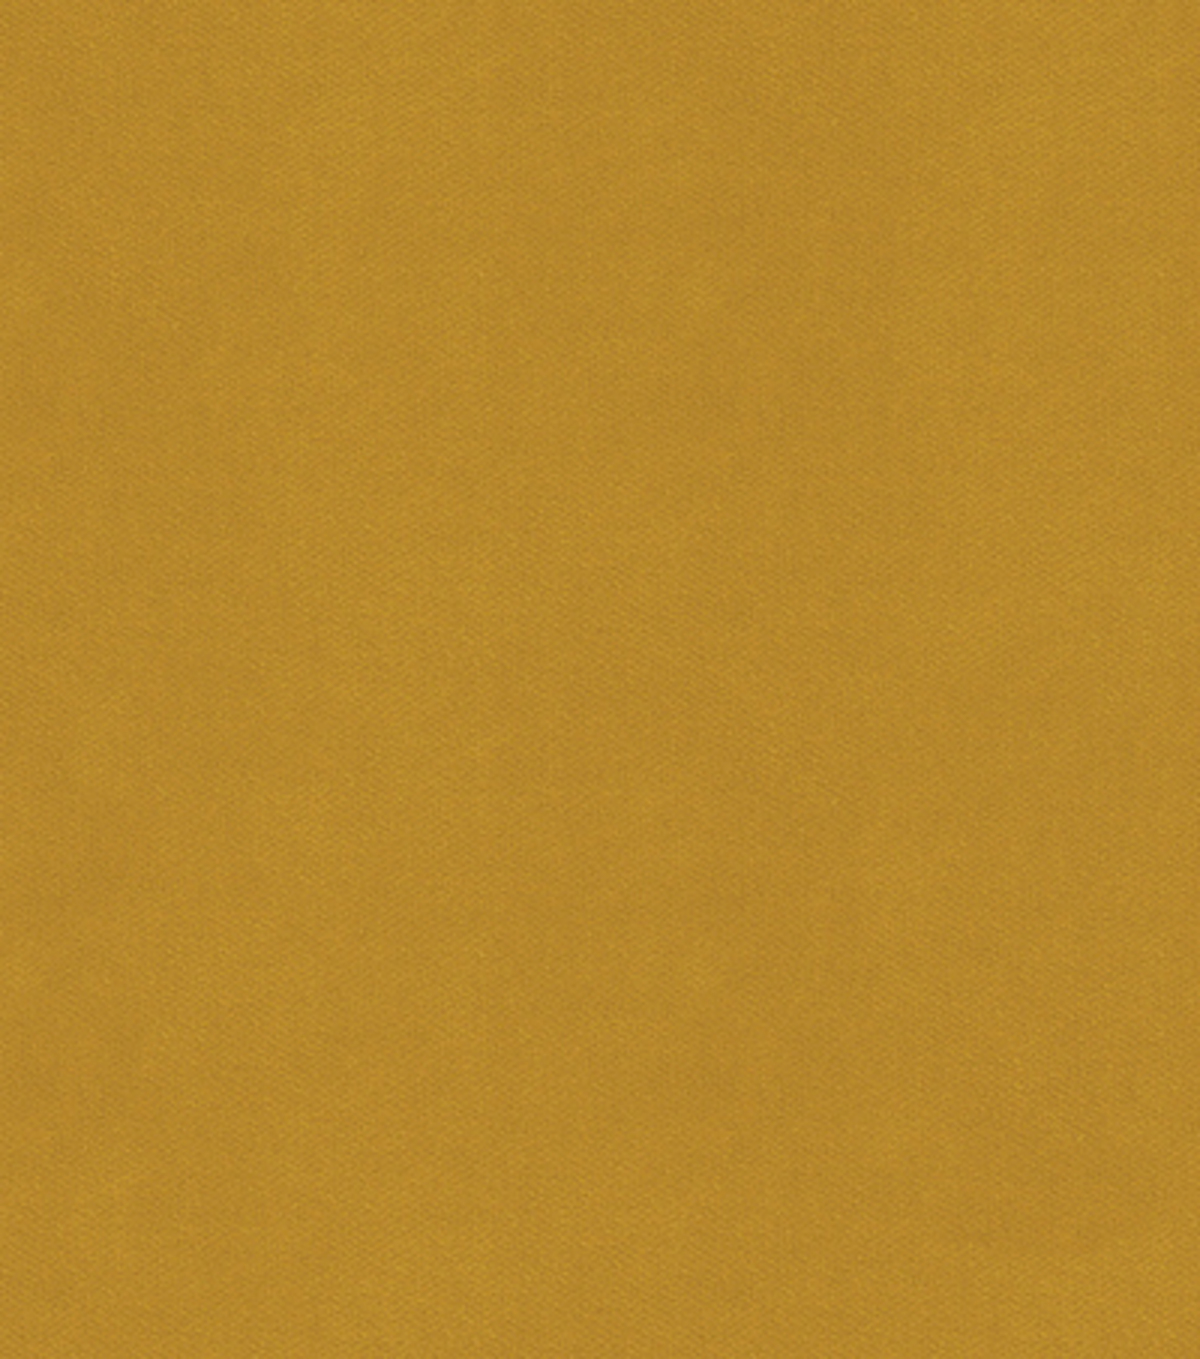 Home Decor 8\u0022x8\u0022 Fabric Swatch-Como-151-Goldfinch